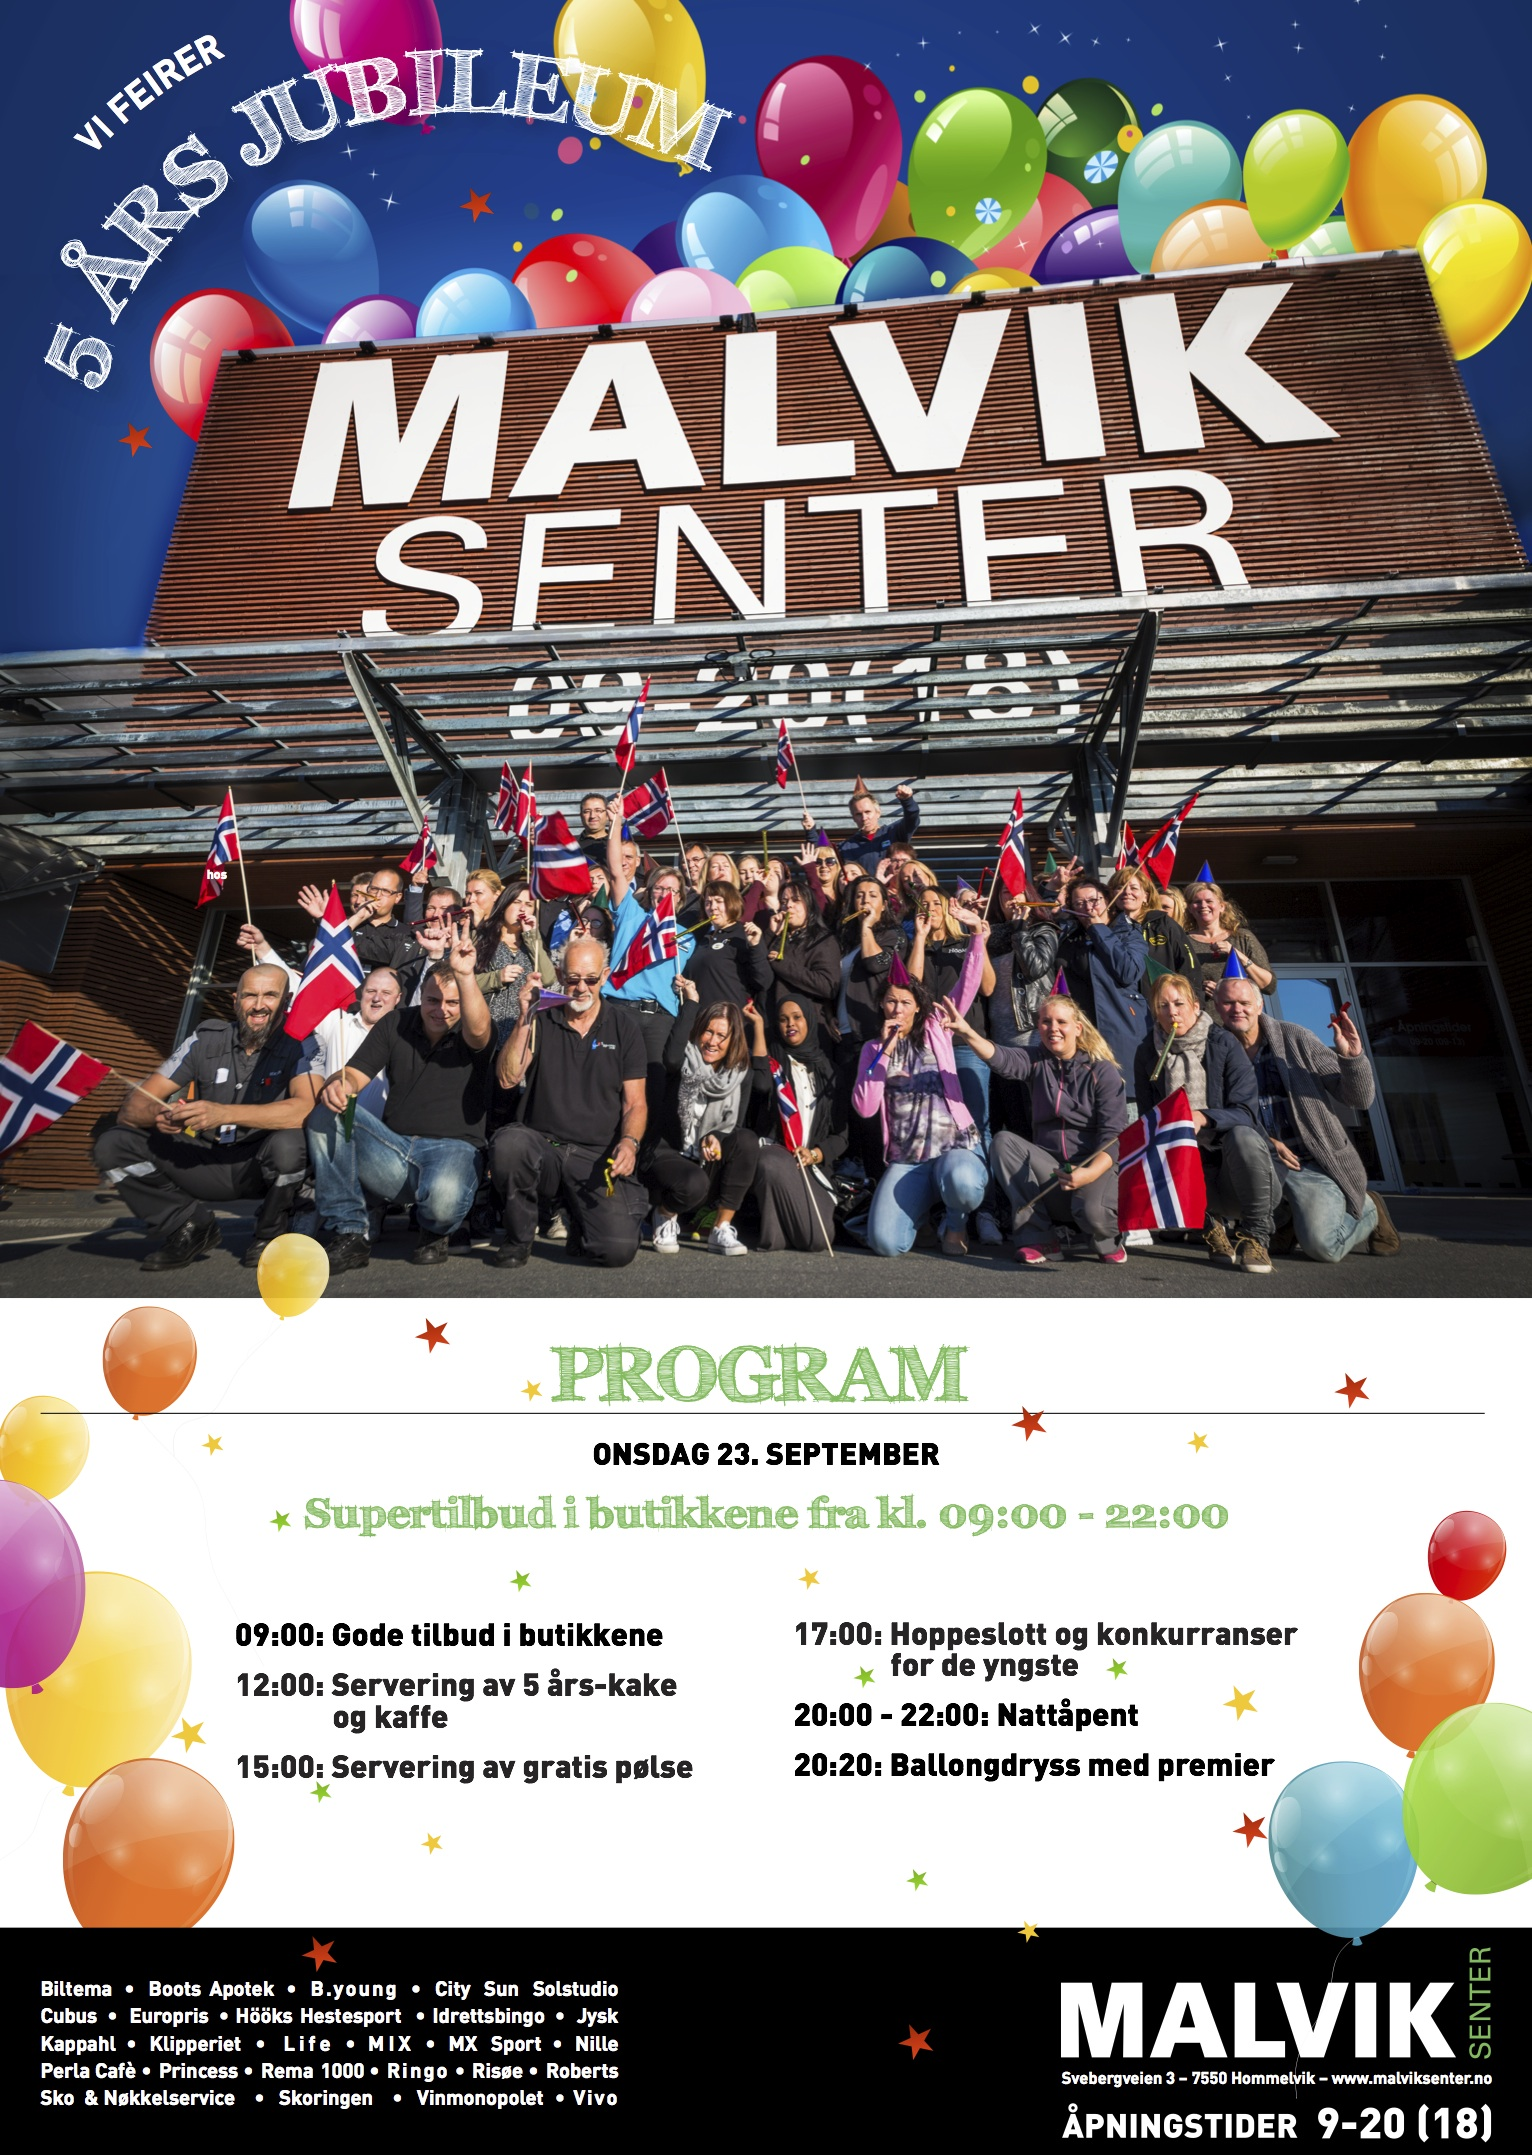 5 års Jubileum For Malvik Senter